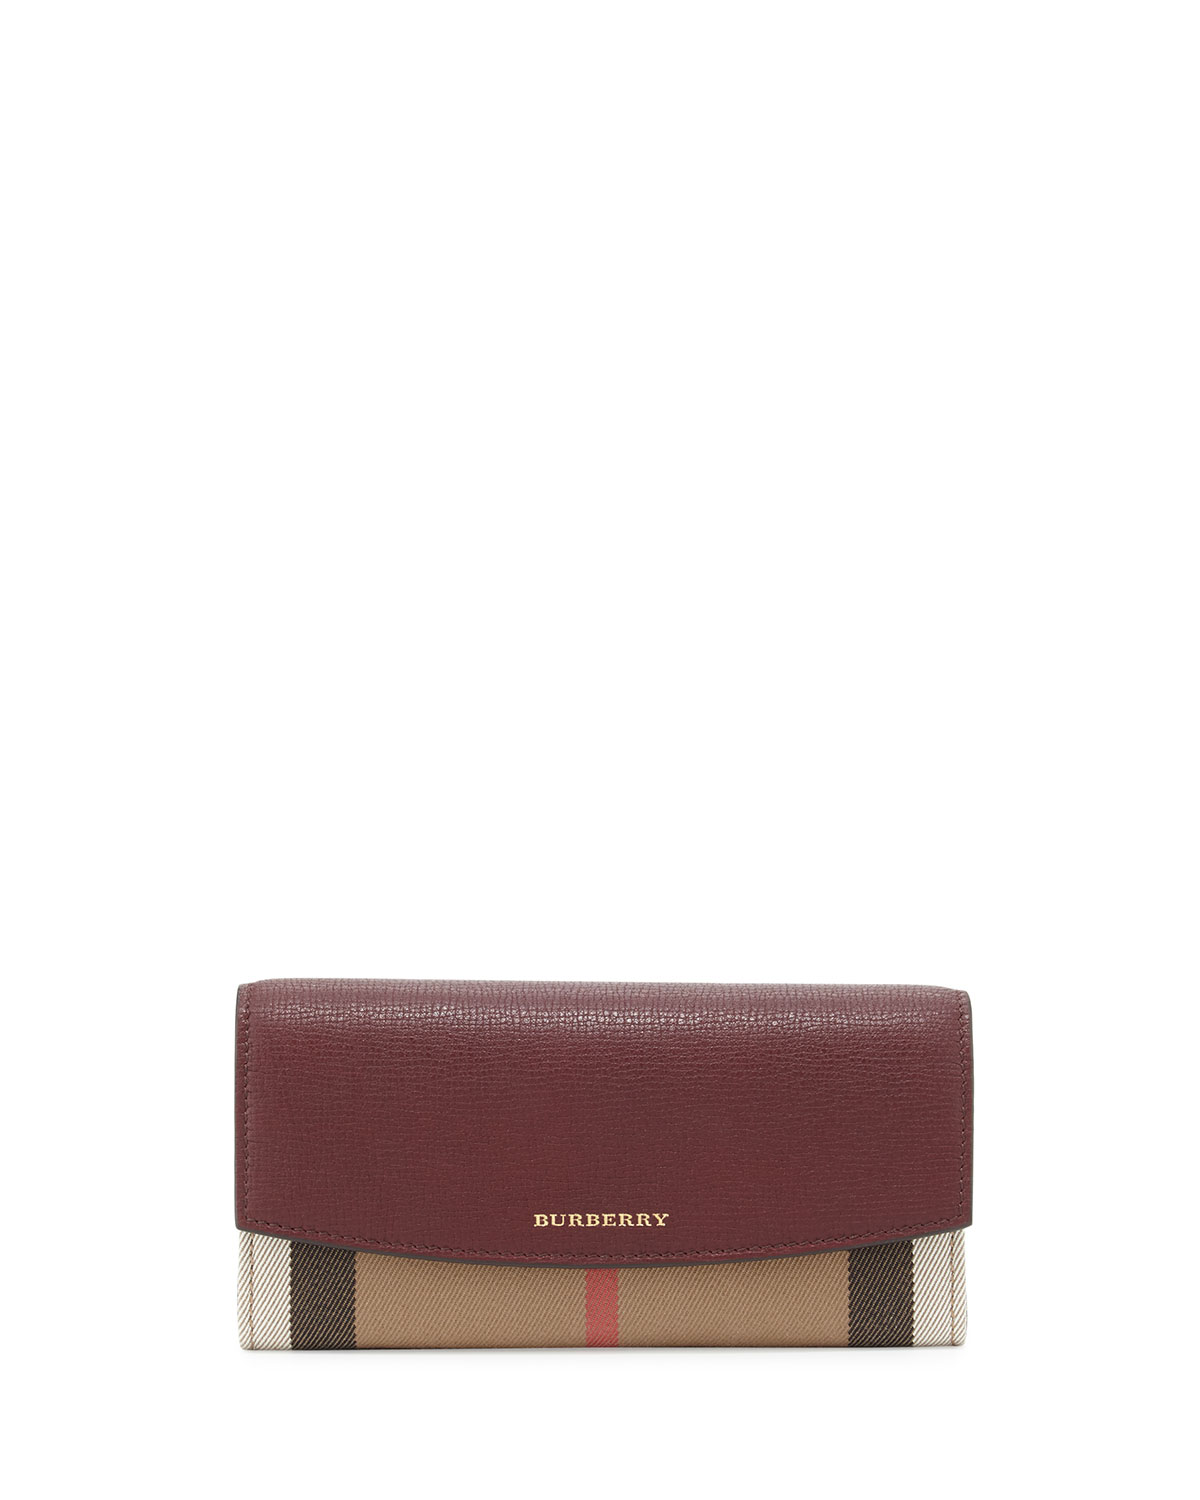 Burberry Porter House Check Continental Wallet, Mahogany Red ... d474f2e36f